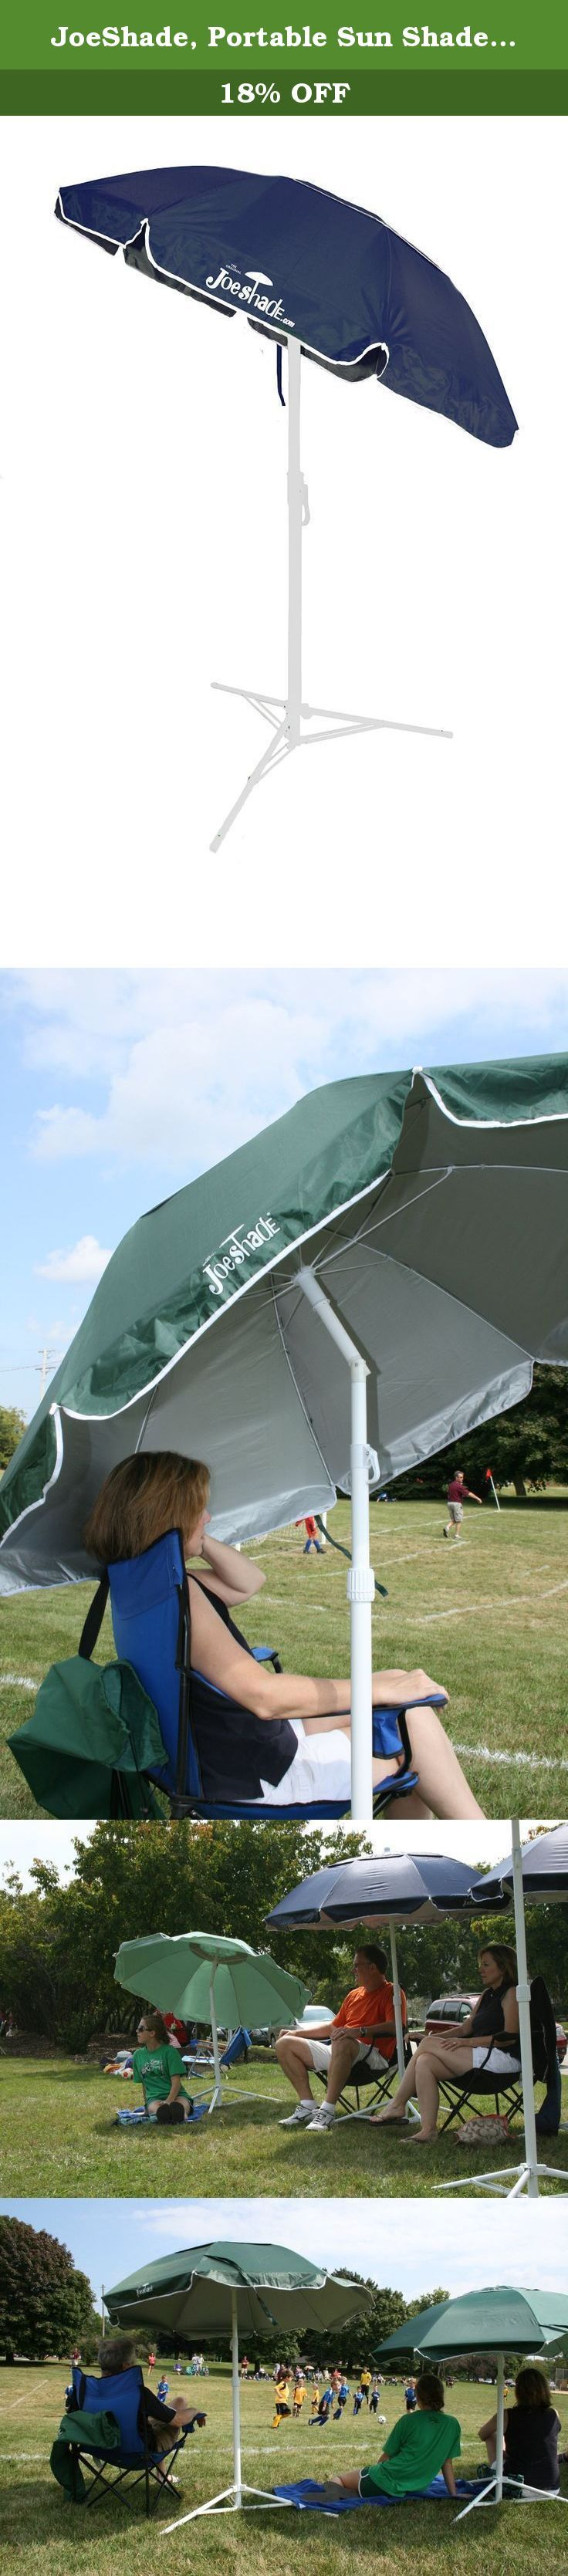 JoeShade, Portable Sun Shade Umbrella, Sunshade Umbrella, Sports Umbrella, BLUE. This is The Original JoeShade portable sports umbrella as seen on TV and playing fields, poolsides, patios and beaches all across the USA. Portable, light weight, with TRIPOD STAND, Tilt and UV Blocking. JoeShade is perfect for all your outdoor activities. Weights only 8 pounds, the 60 inch umbrella width is perfect size for 2 adults. JoeShade is an Official Sponsor of The Melanoma Research Foundation (MRF)…